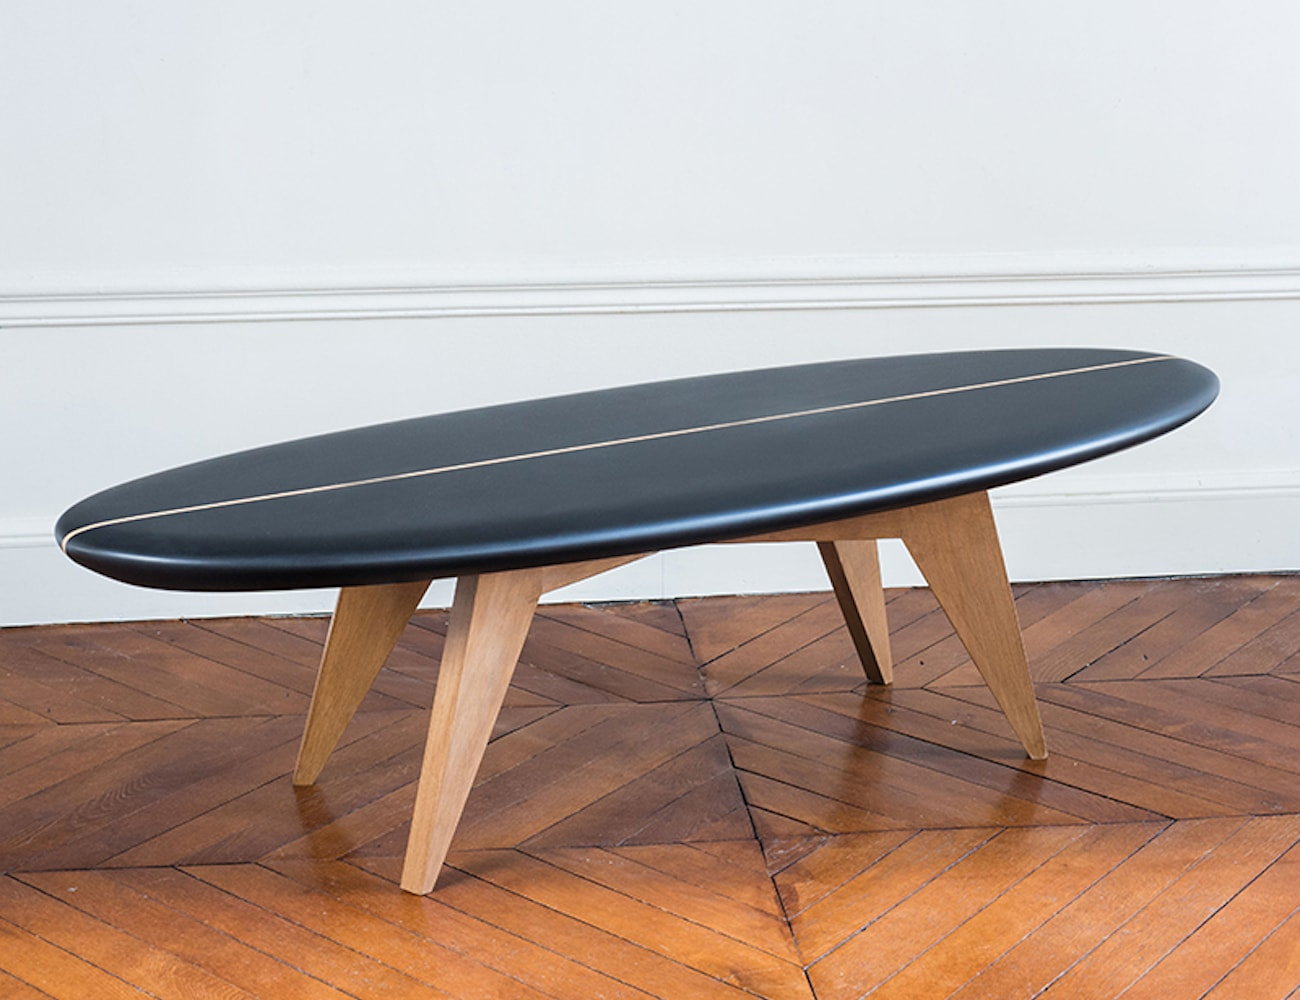 salty design bolge 60 surfboard coffee table » gadget flow Surfboard Coffee Table